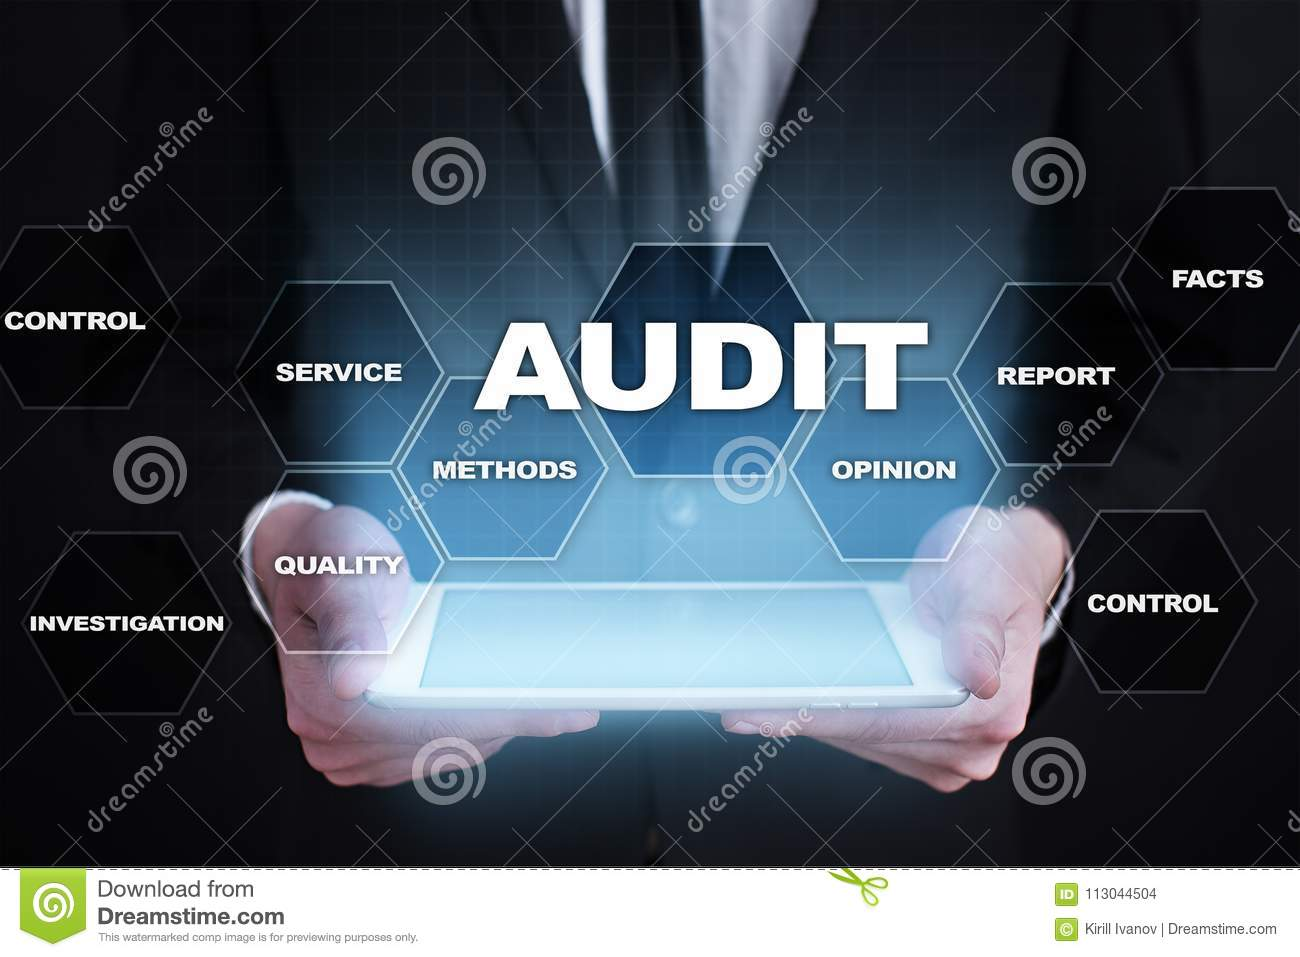 Audit business concept. Auditor. Compliance. Virtual screen technology.